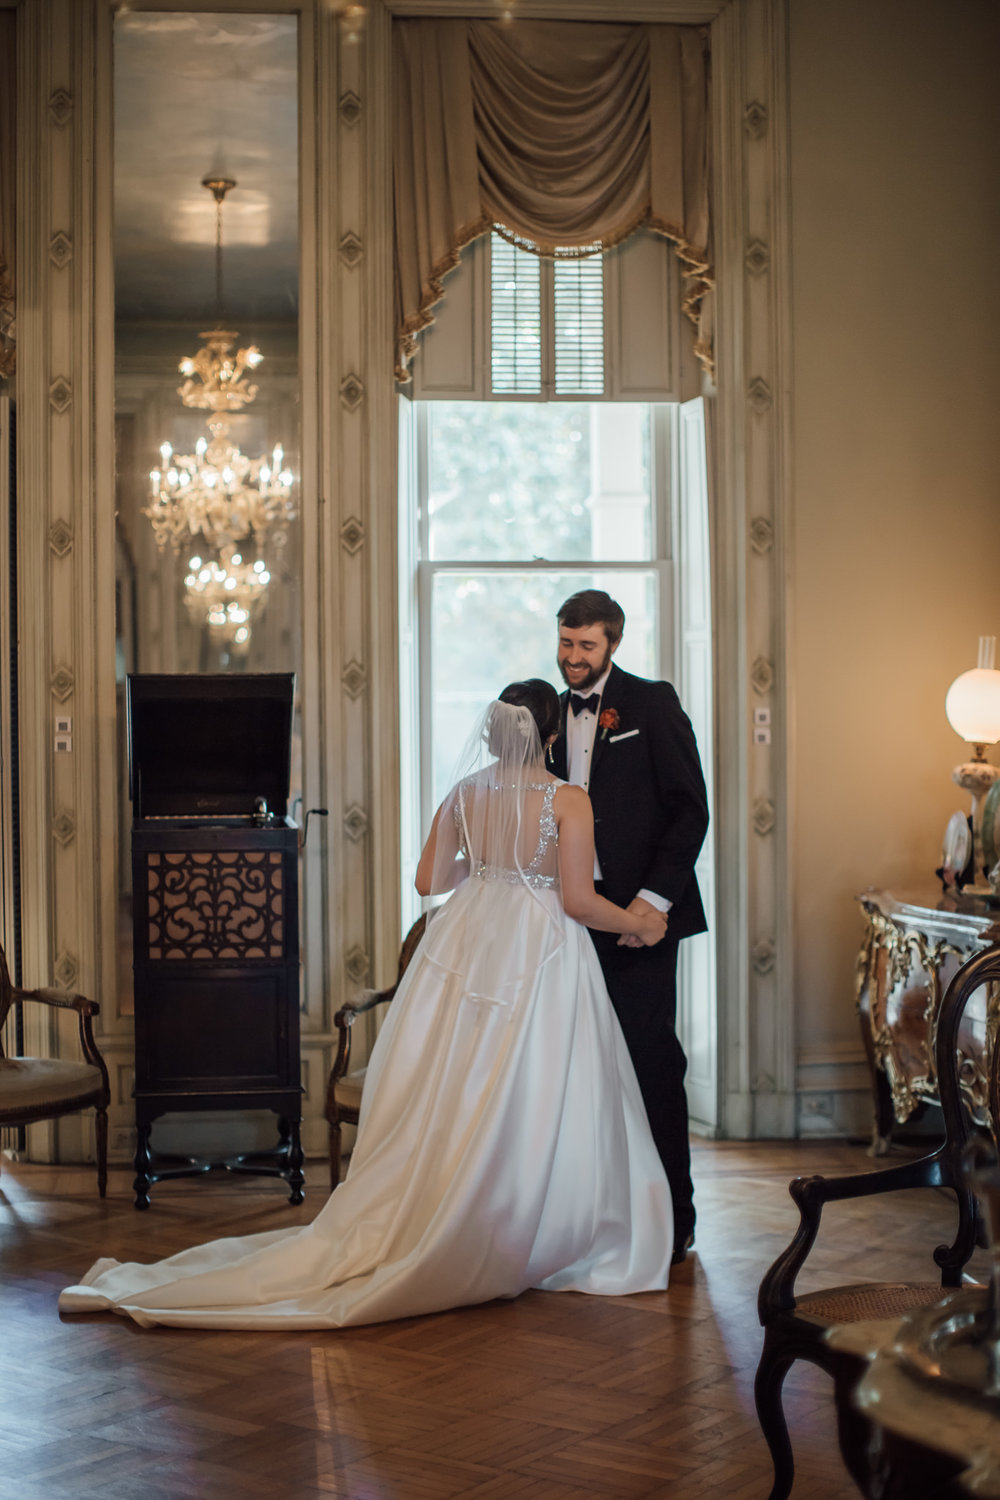 blog-cassie-cook-photography-woodruff-fontain-house-memphis-wedding-venue-6-2.jpg